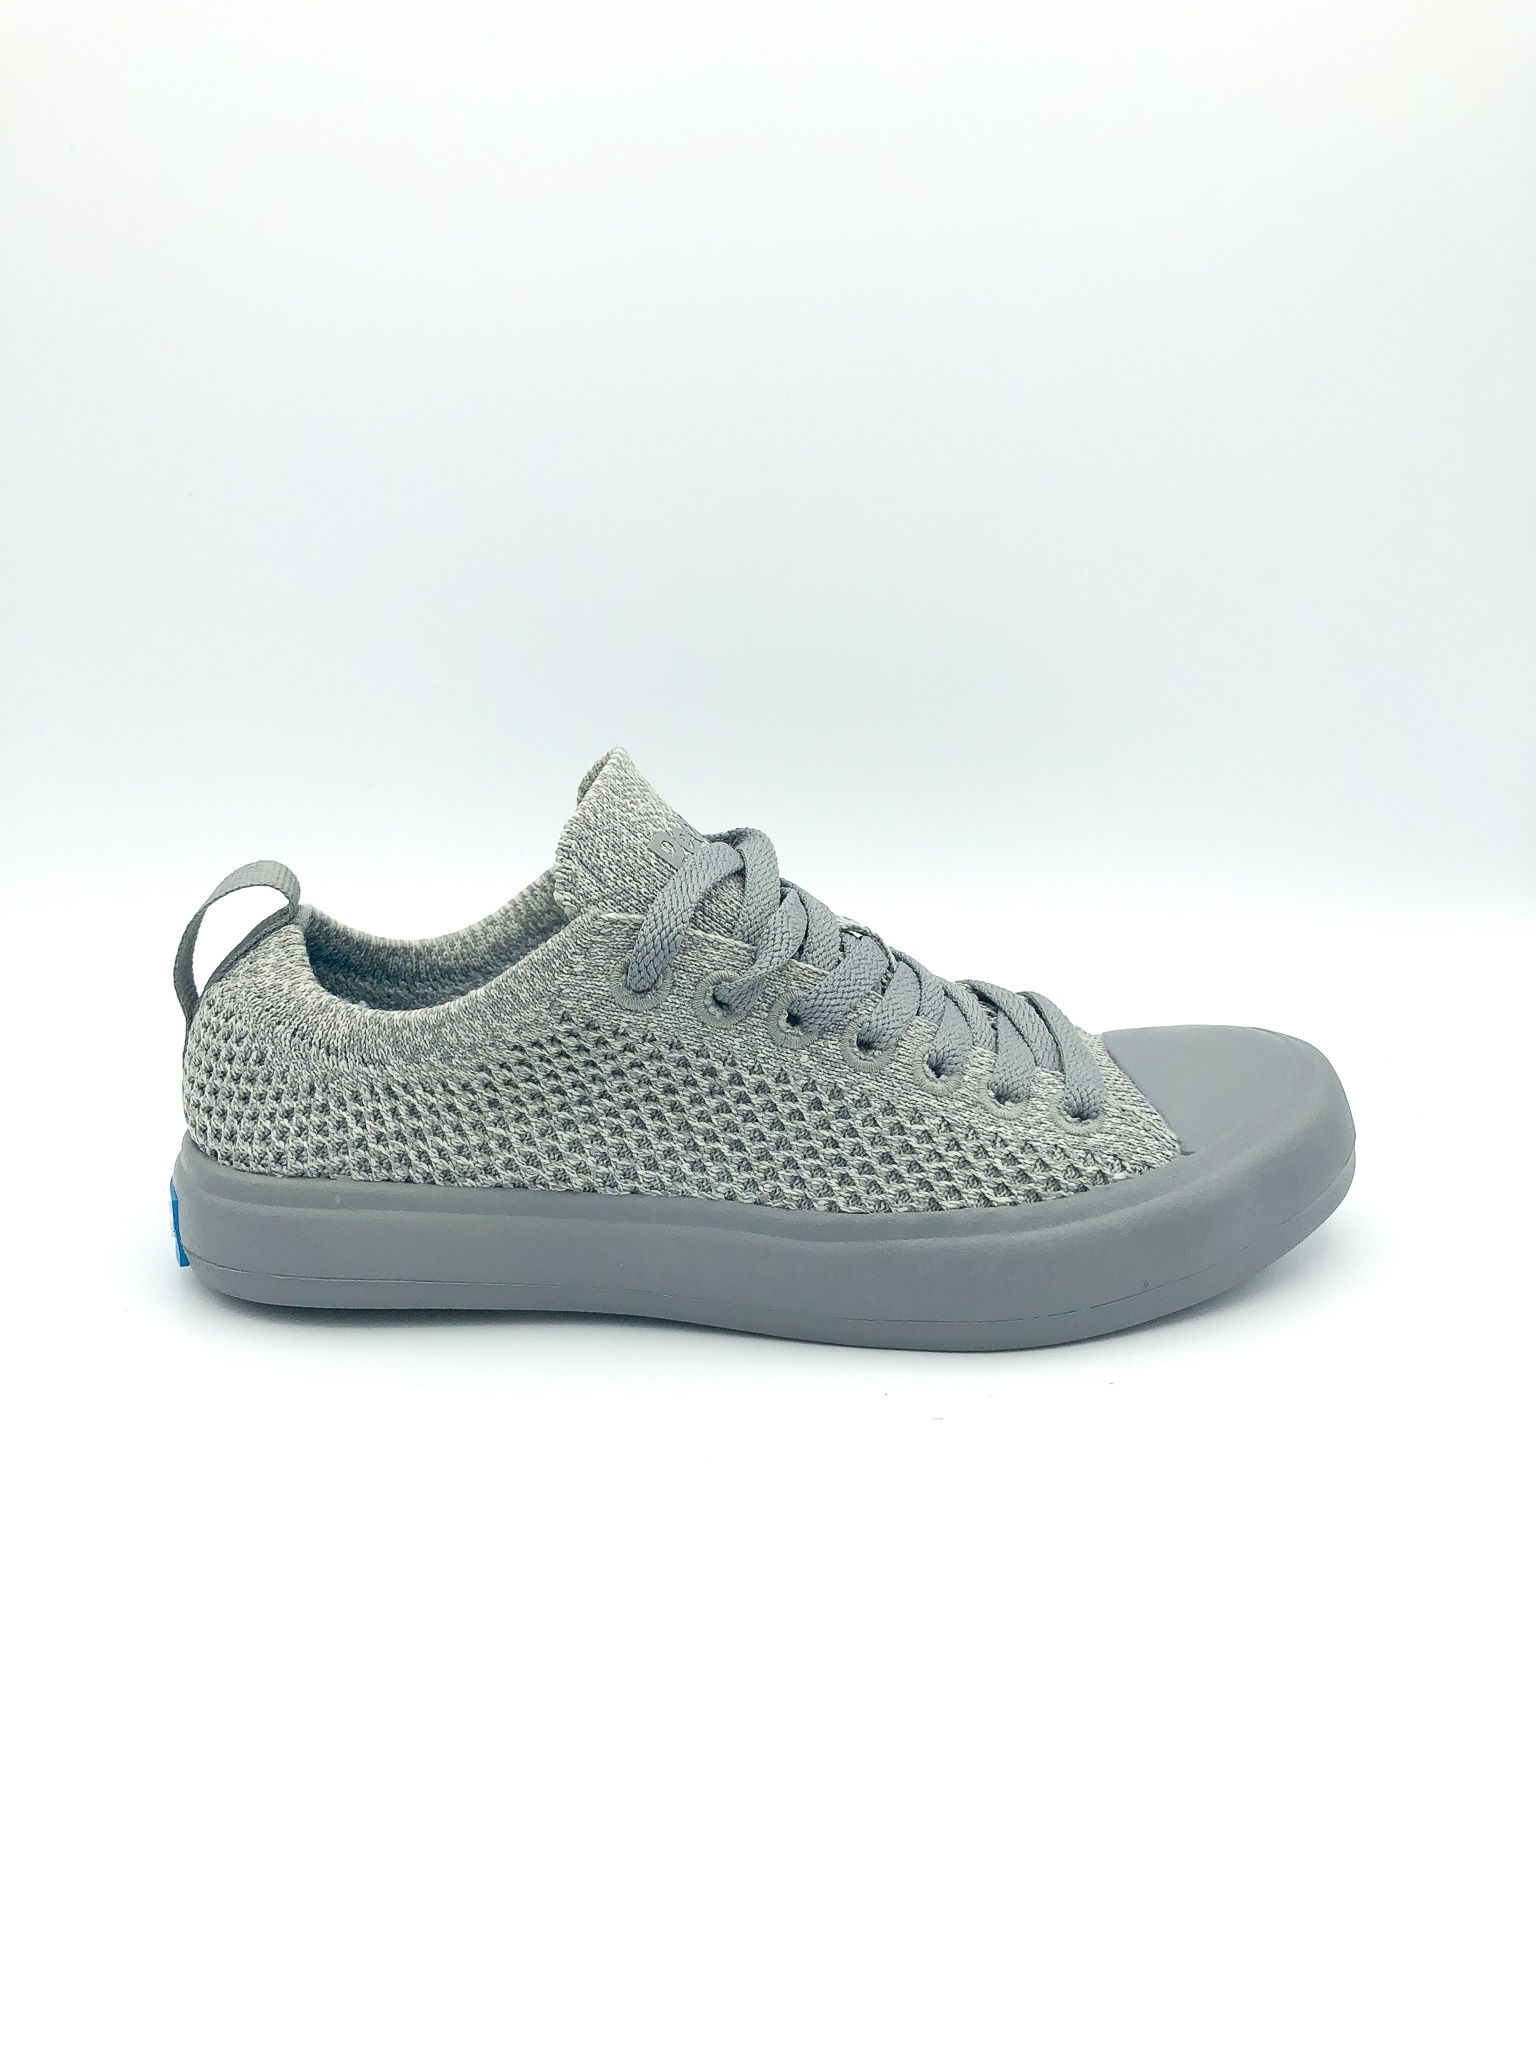 56ae8f94159 PEOPLE FOOTWEAR - THE PHILLIPS KNIT IN THUNDER GREY/GALLERY GREY - the  Urban Shoe Myth